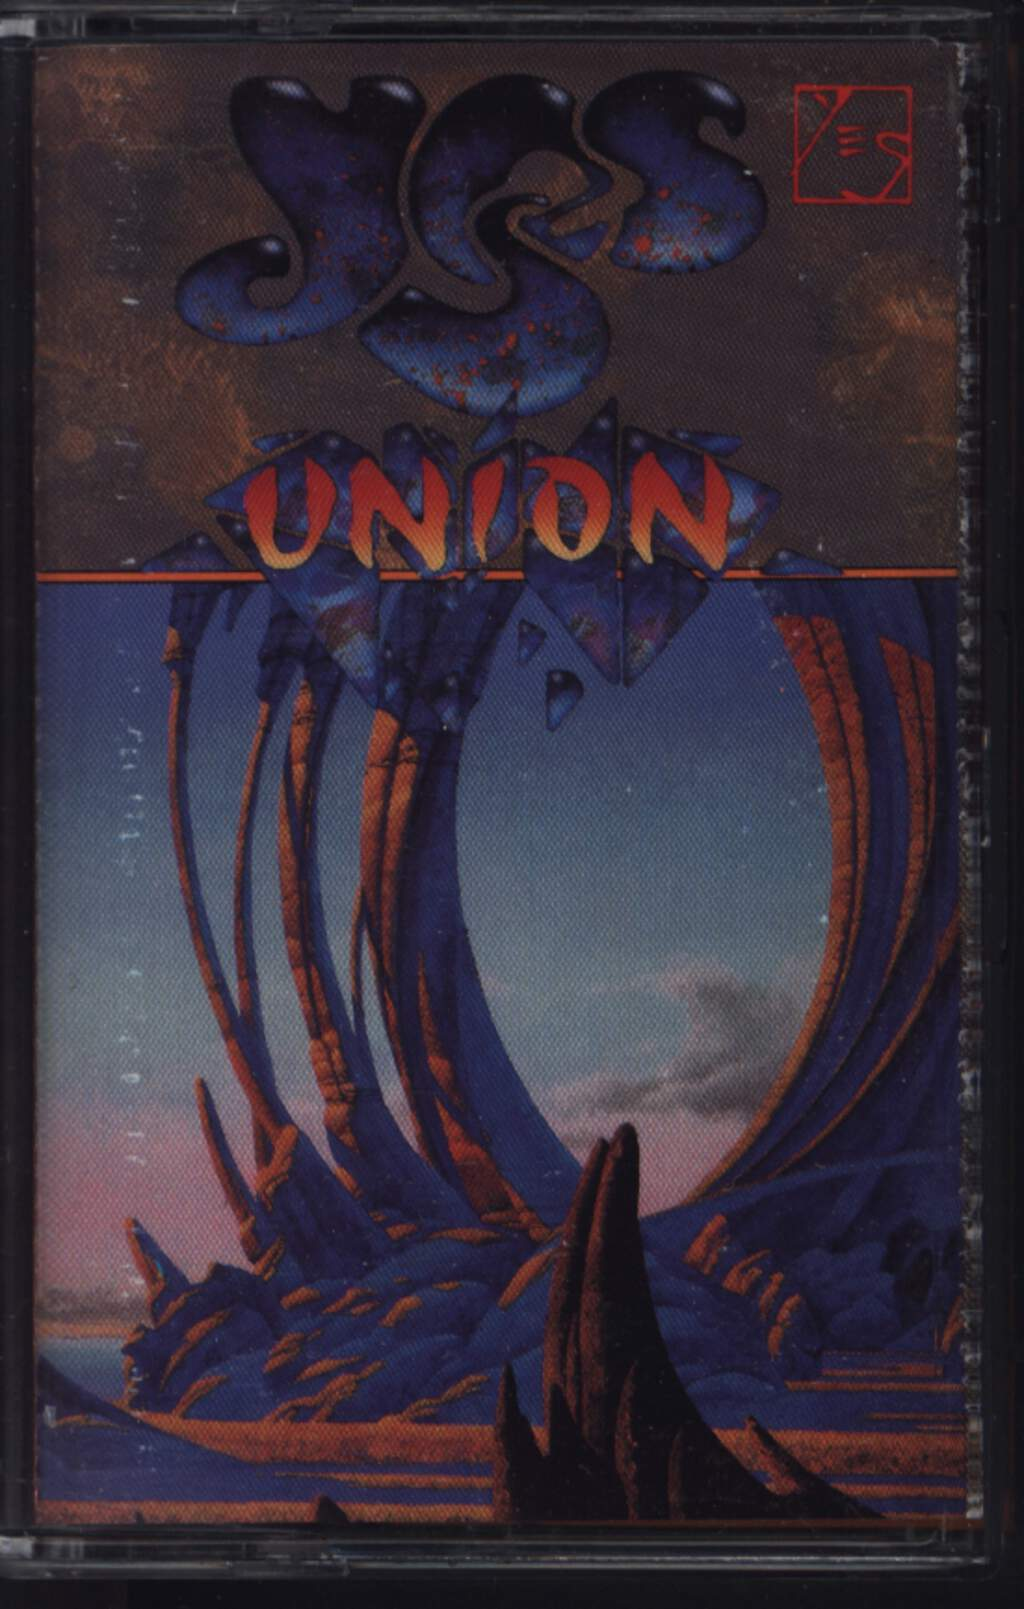 Yes: Union, Tape